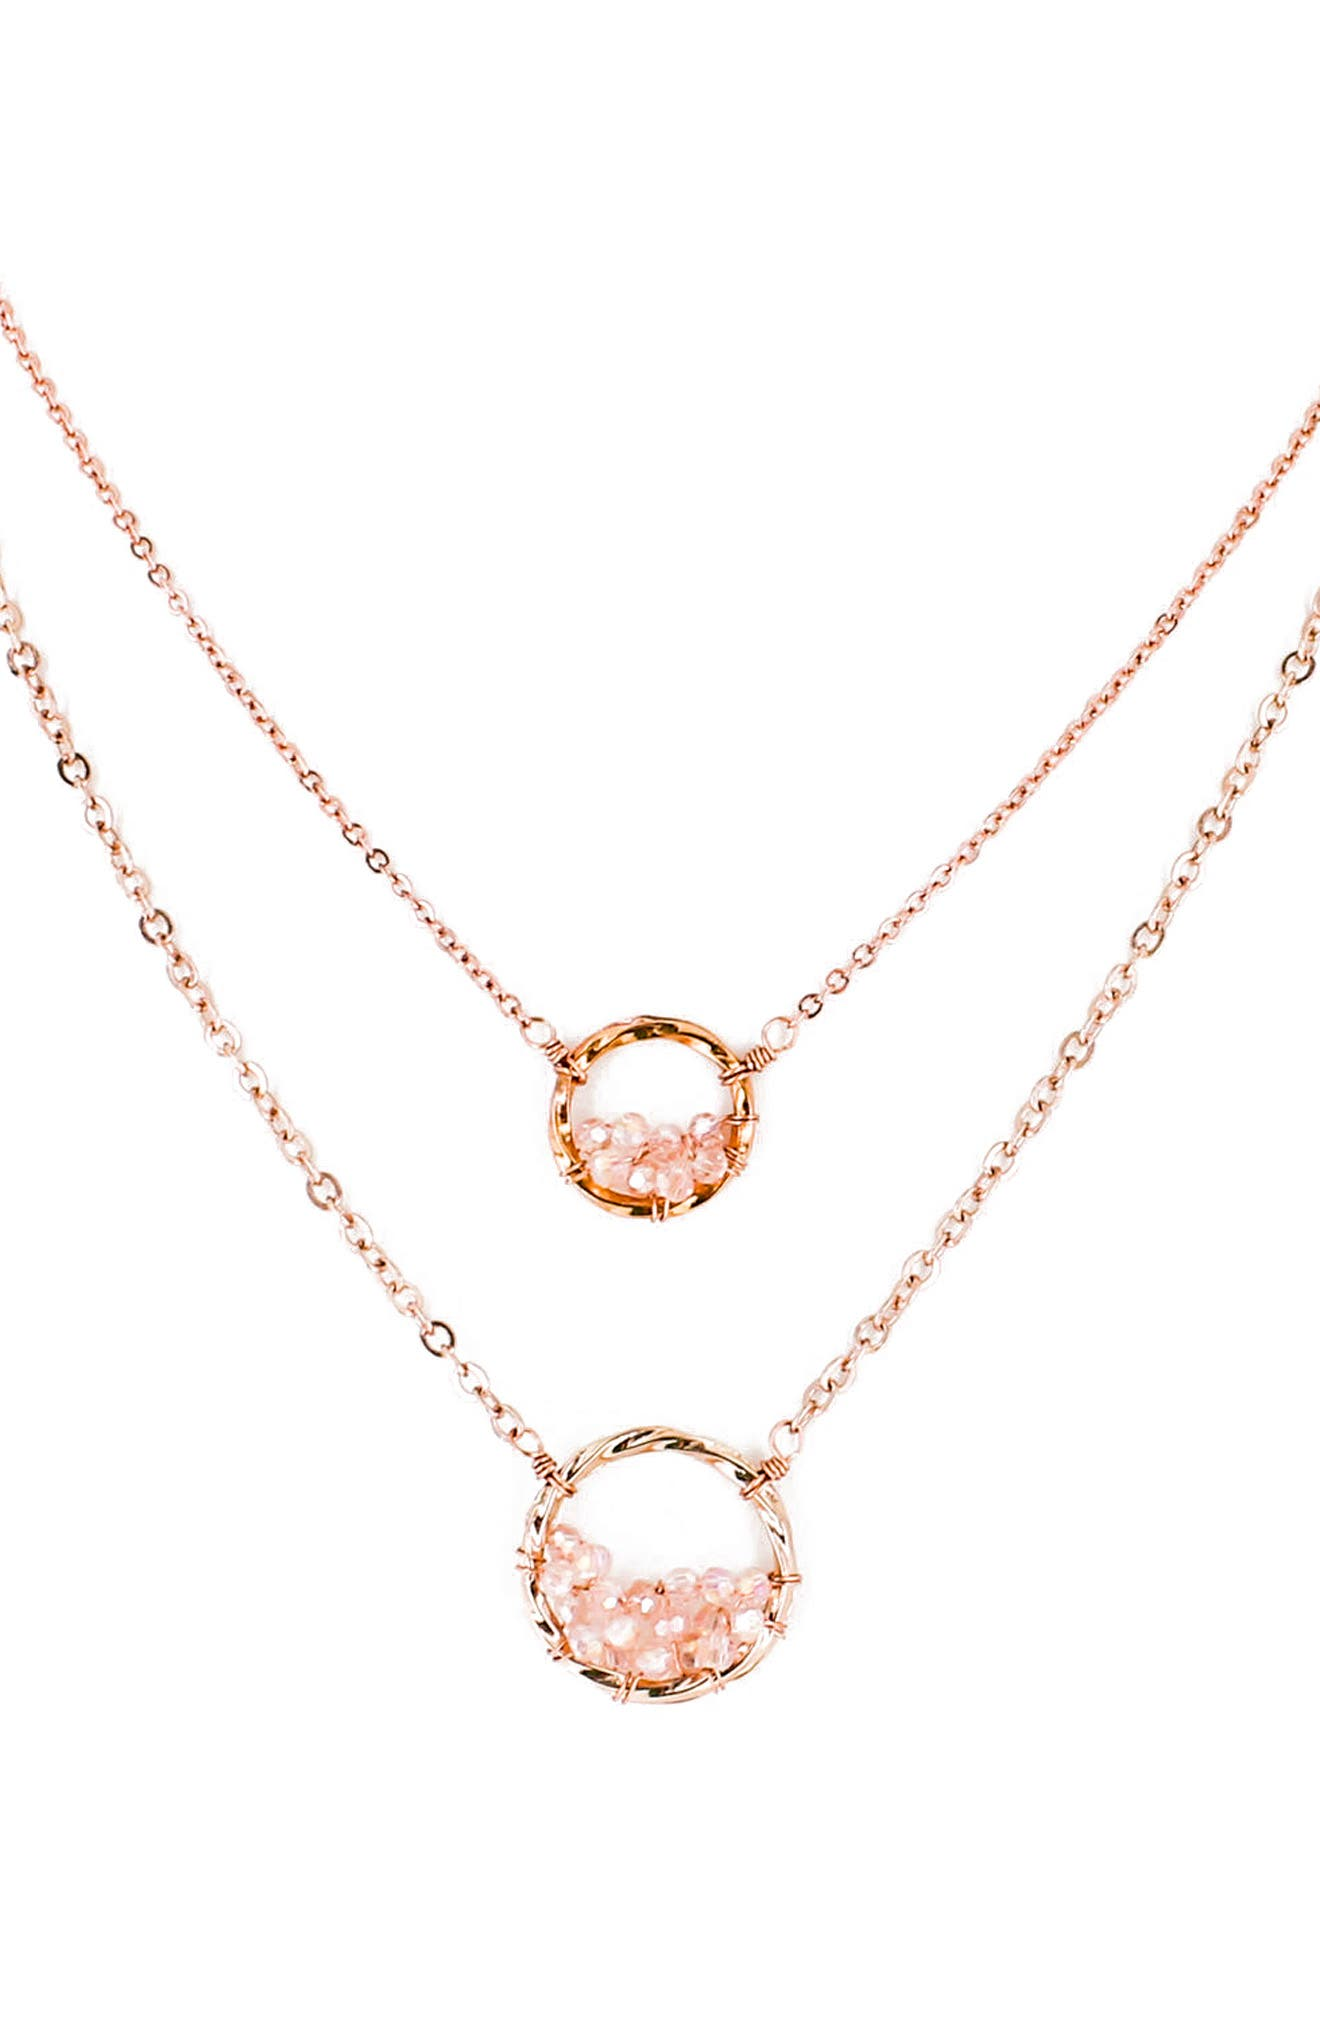 Alternate Image 1 Selected - Panacea Crystal Circle Double Chain Necklace